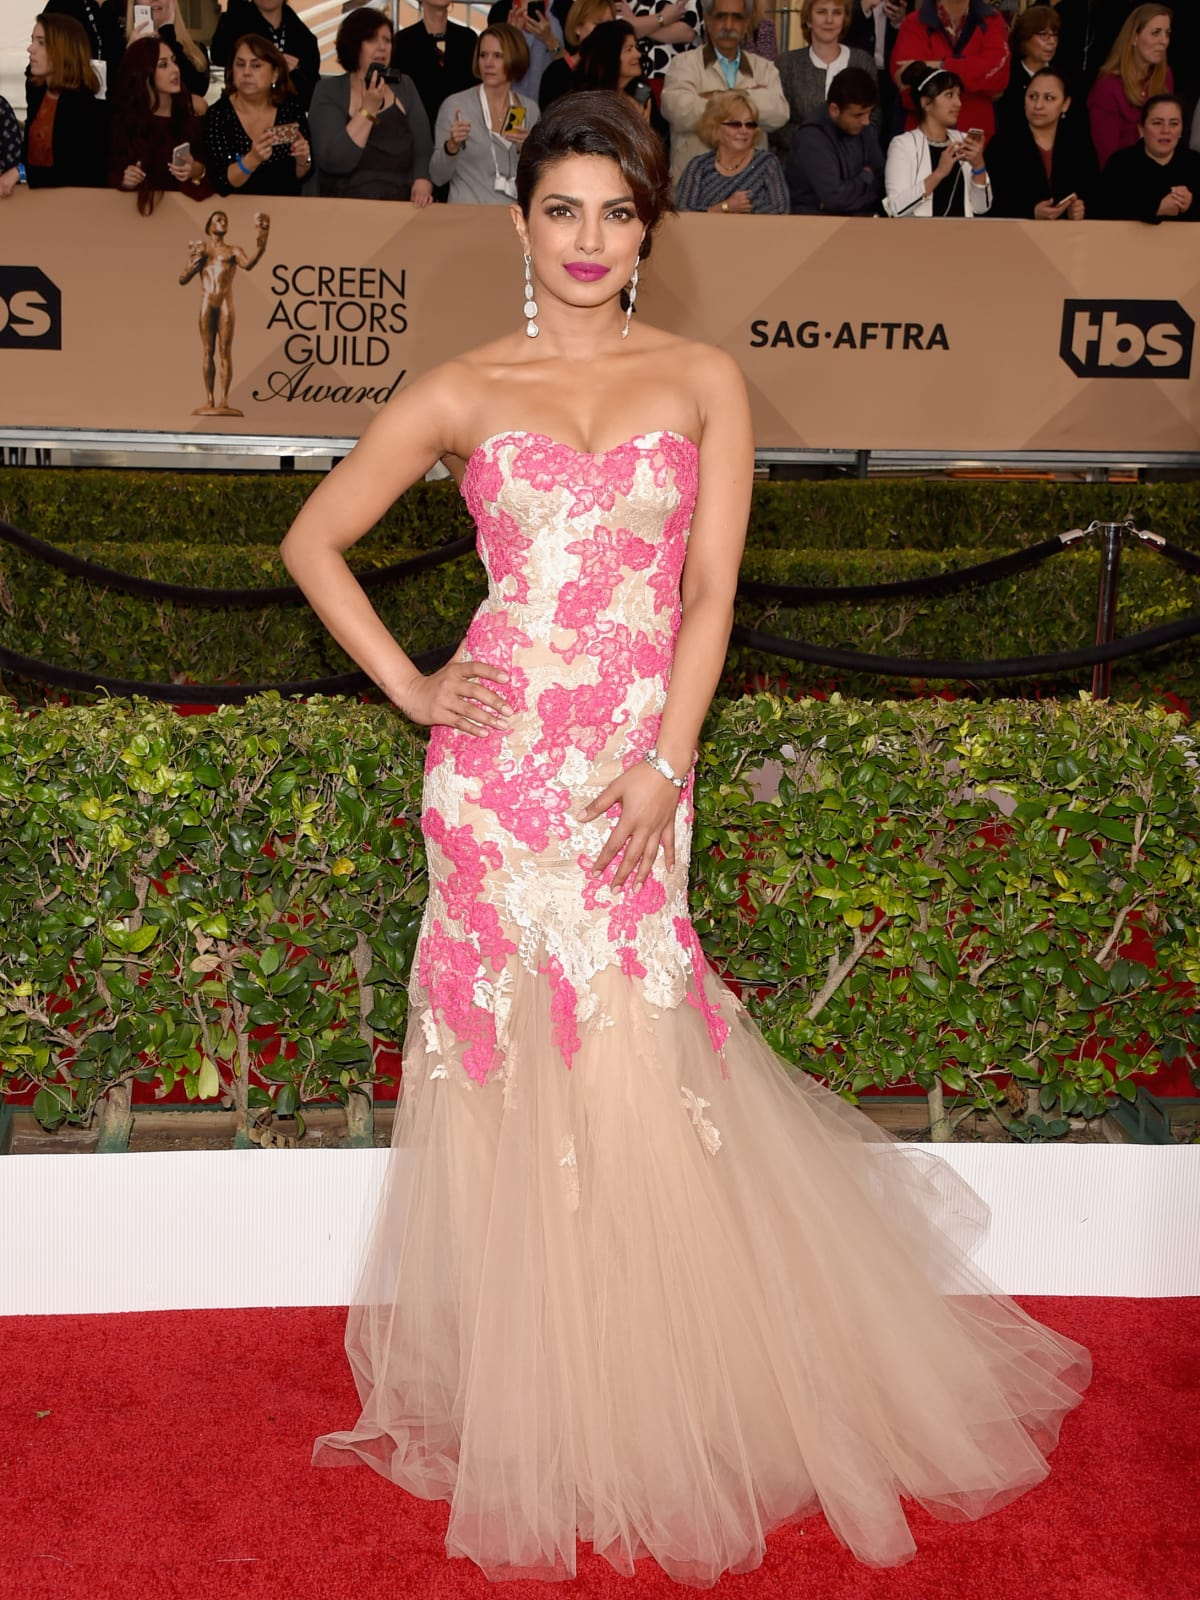 Priyanka Chopra at Screen Actor Guild Awards